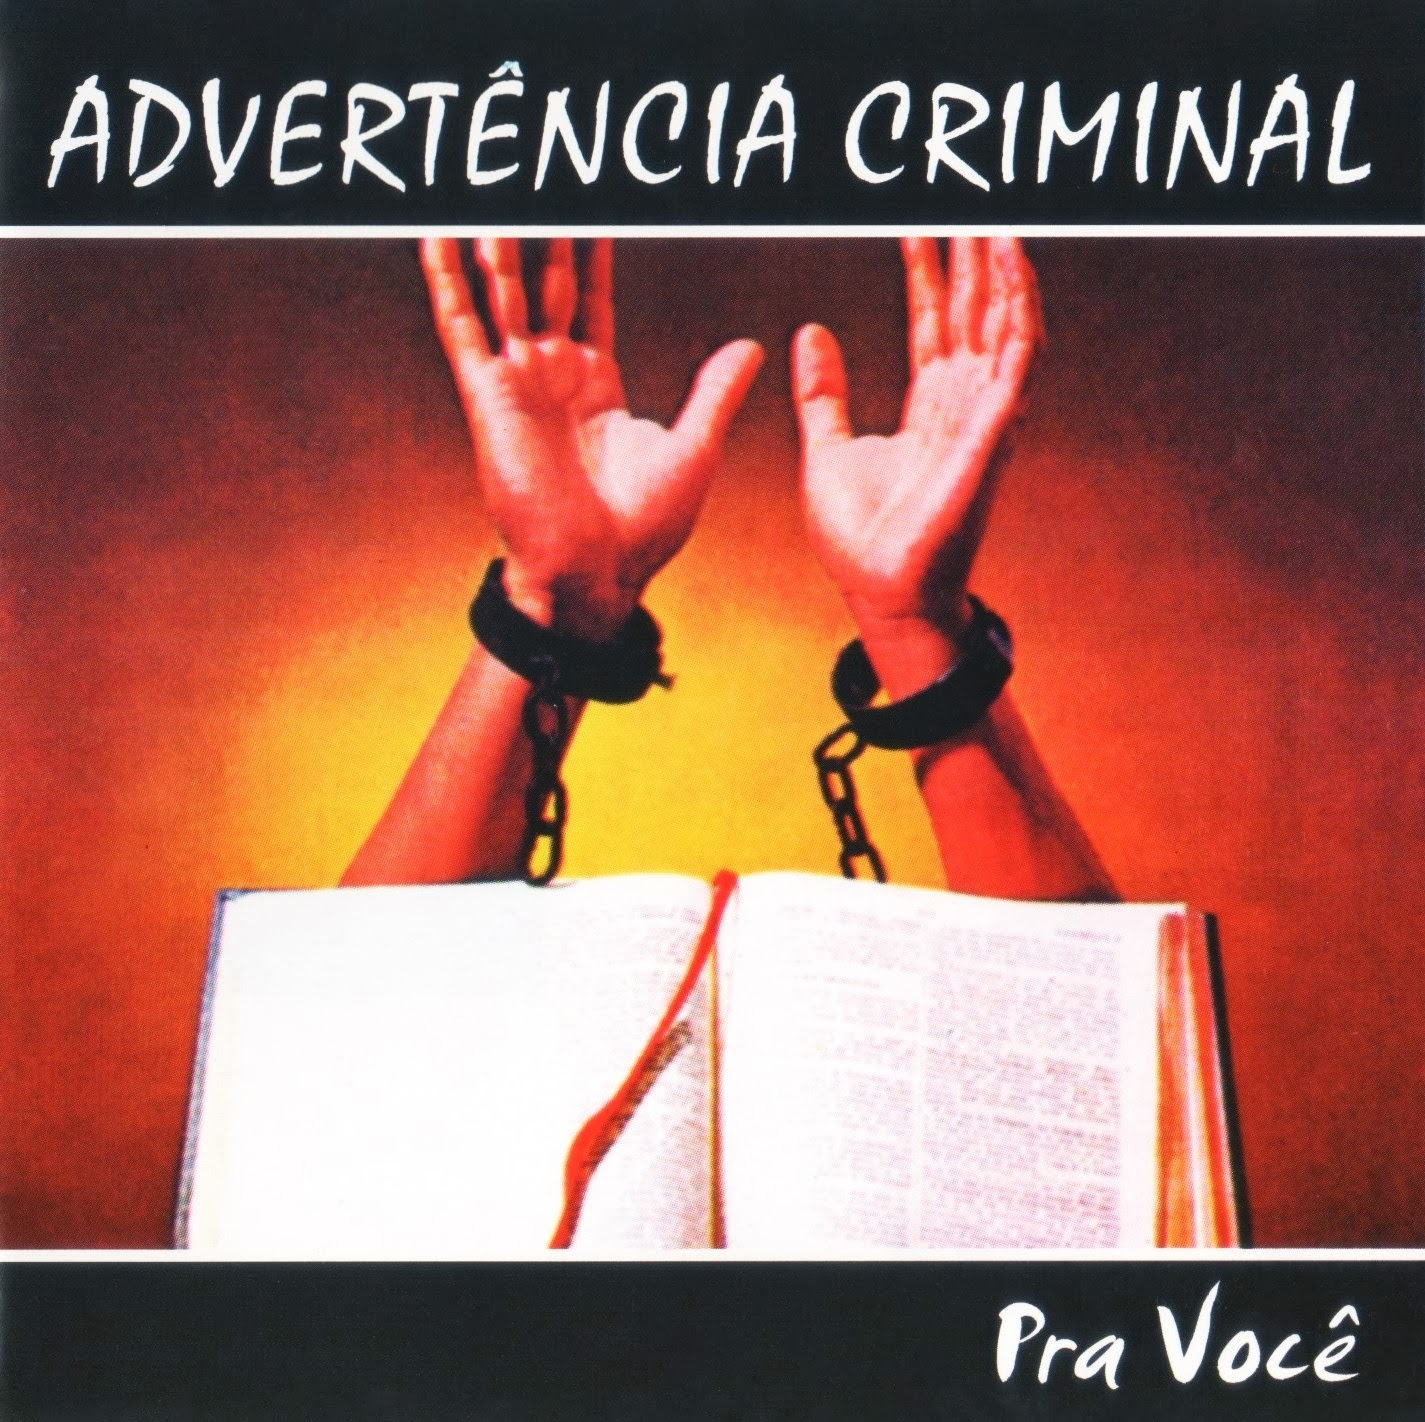 Advertência Criminal